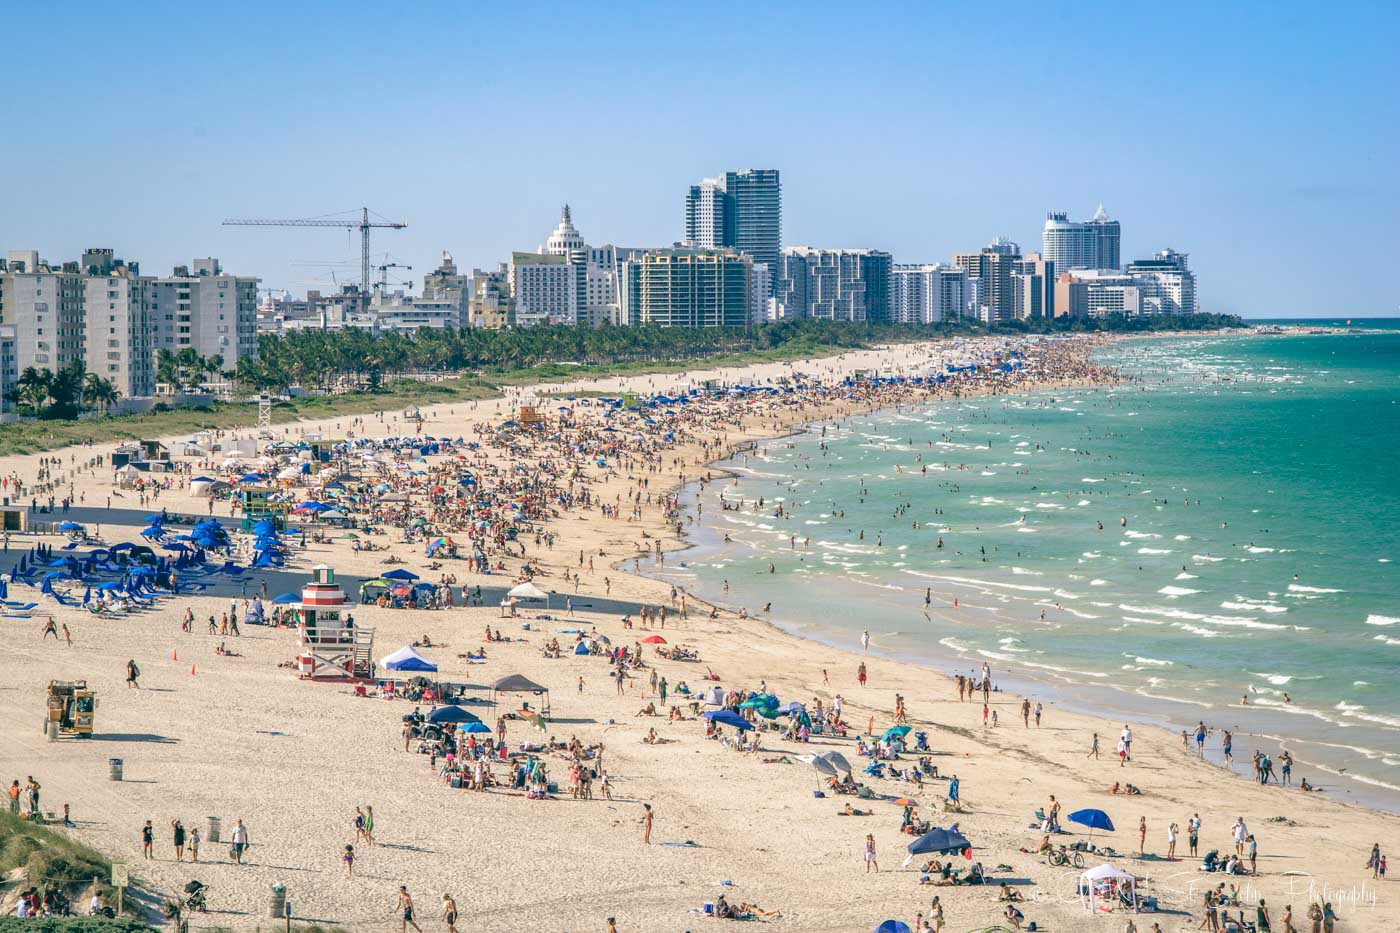 : Road trip around America stop: Miami Beach, Florida